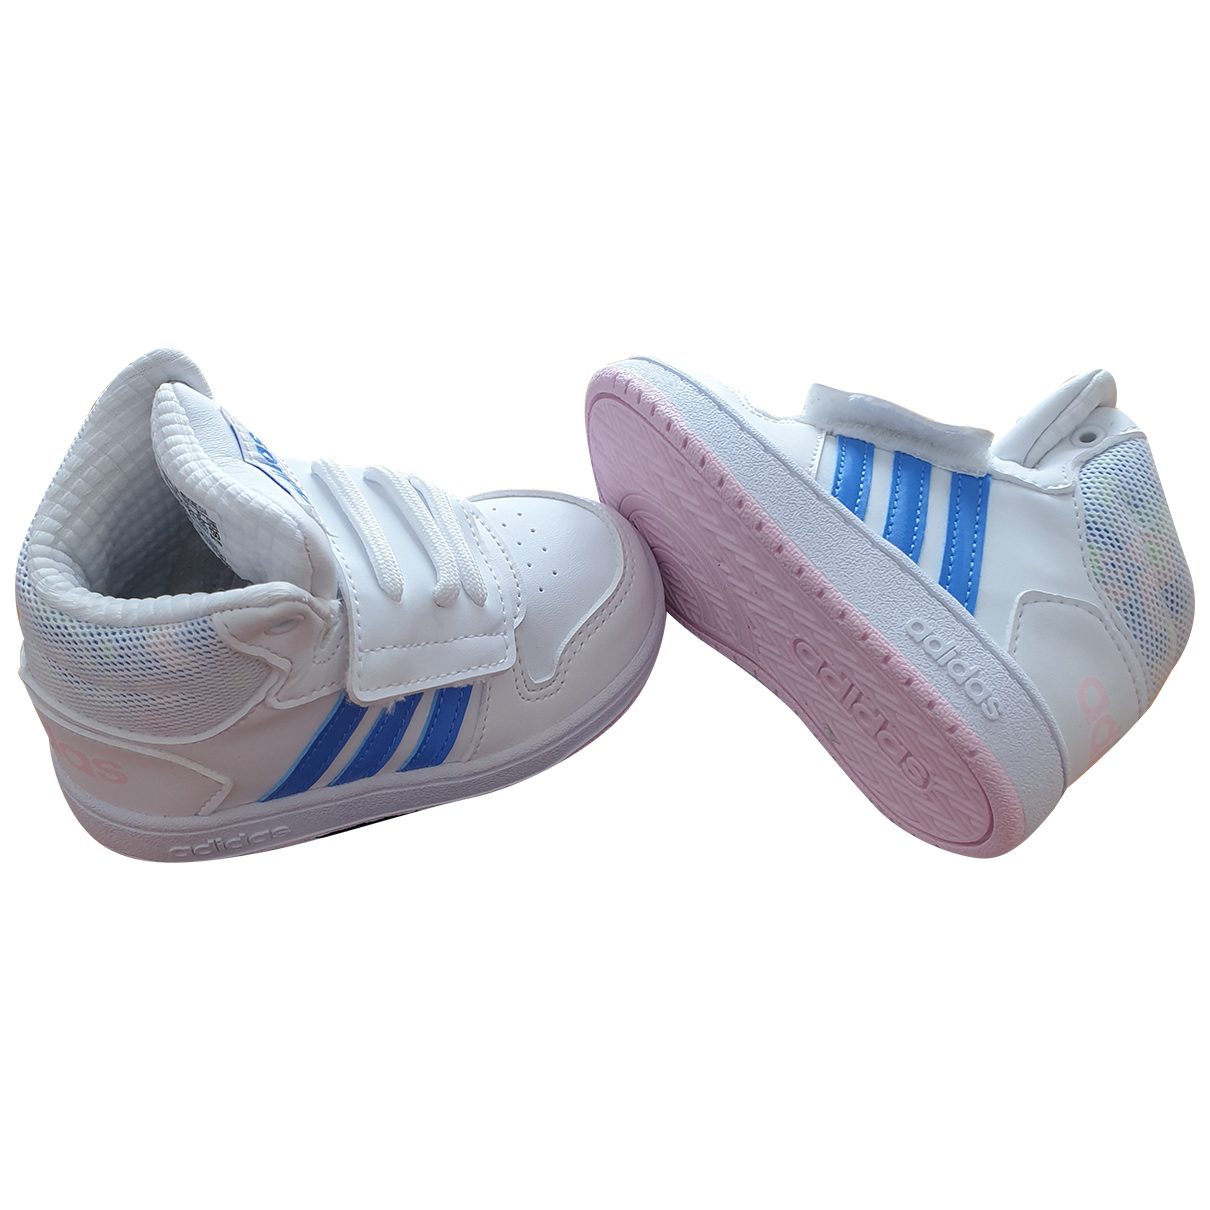 Adidas N White Trainers for Kids 23 FR